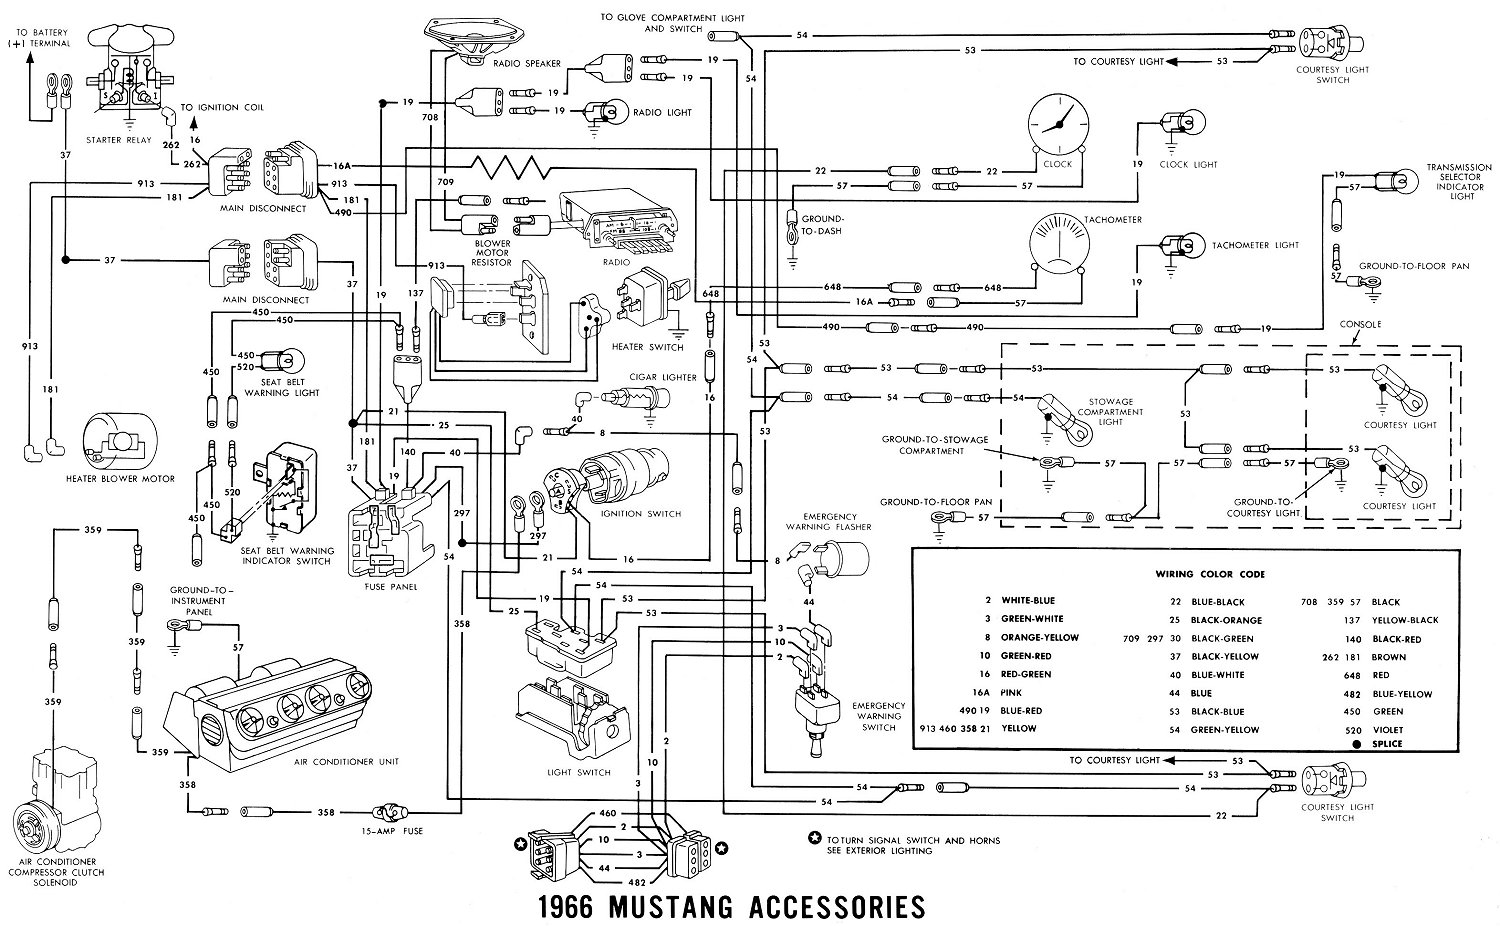 66acces1 1966 mustang wiring diagrams average joe restoration 2007 ford mustang gt wiring diagram at bakdesigns.co